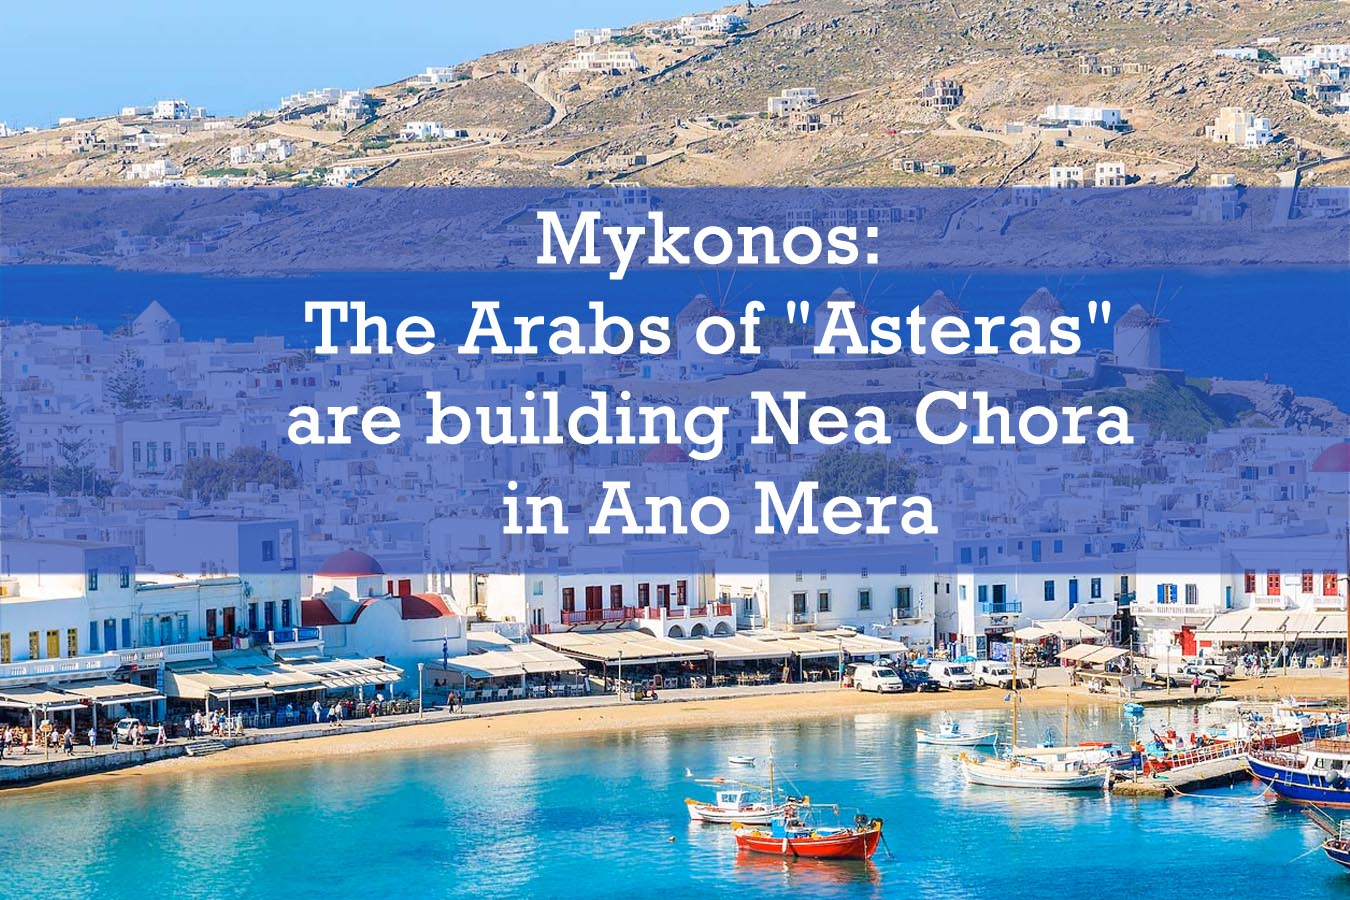 "Mykonos: The Arabs of ""Asteras"" are building Nea Chora in Ano Mera"